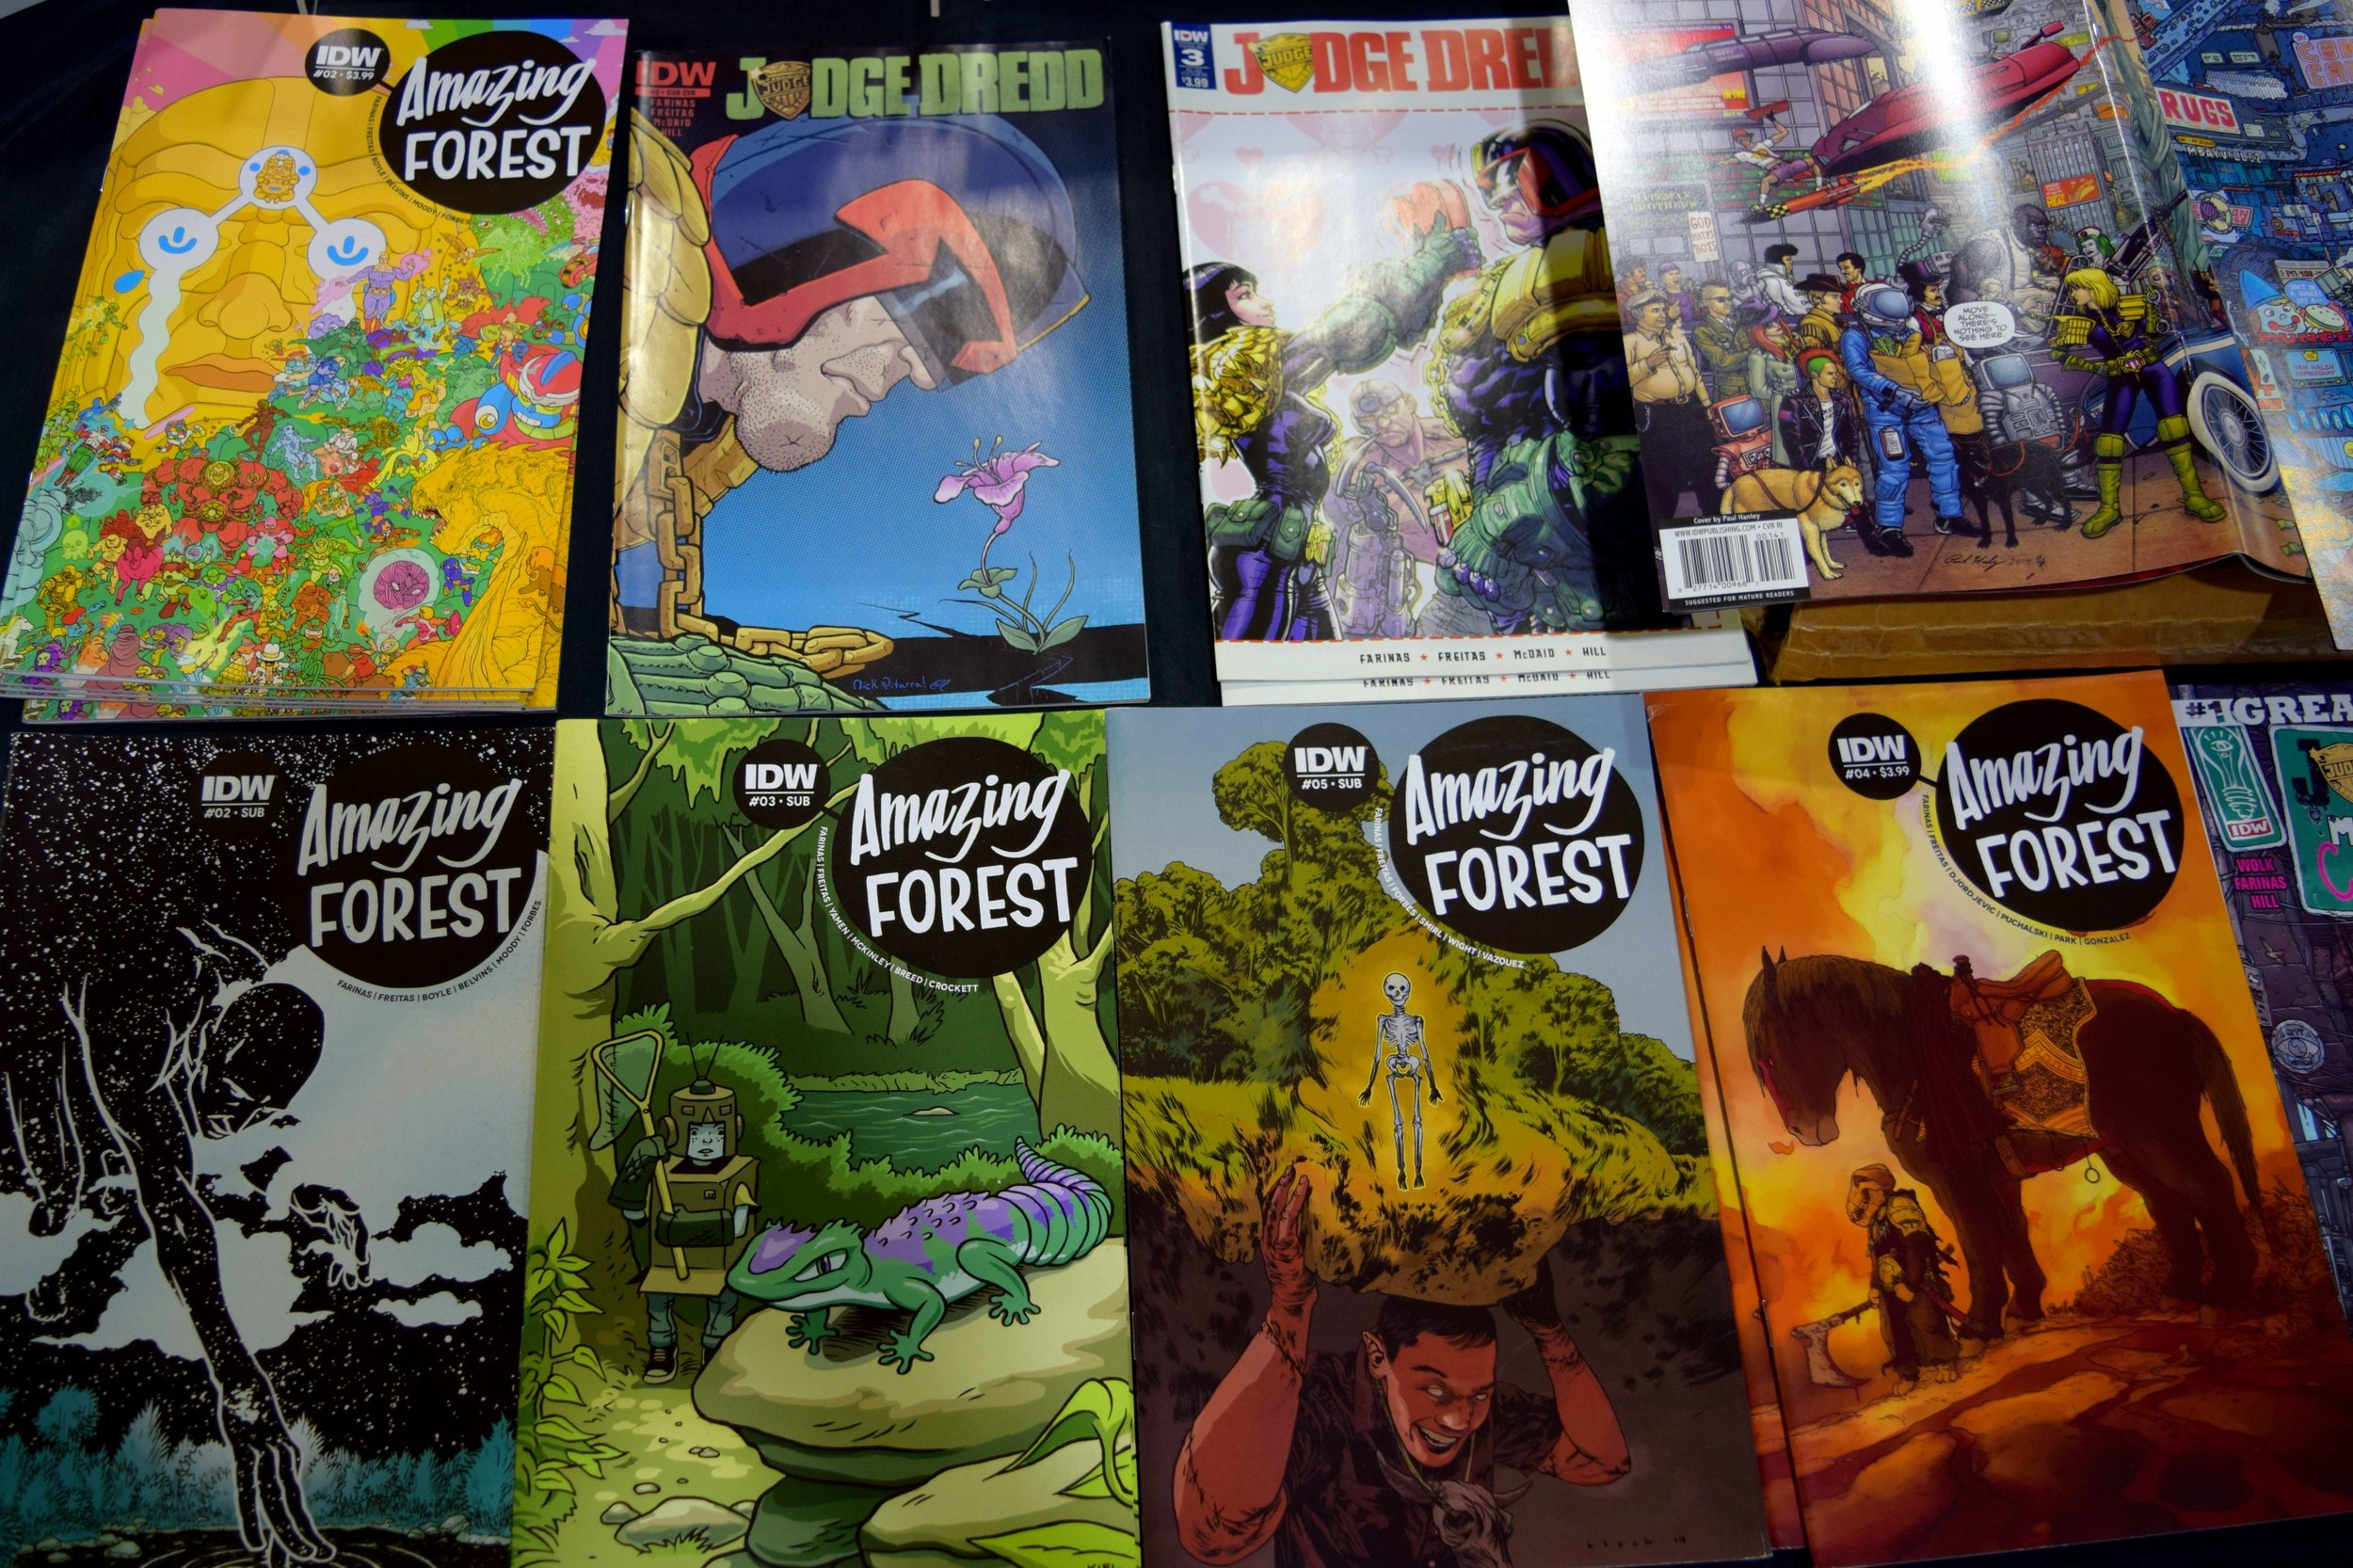 Judge Dredd & Amazing Forest comics from Ulises Farinas at Fort Collins Comic Con 2016.